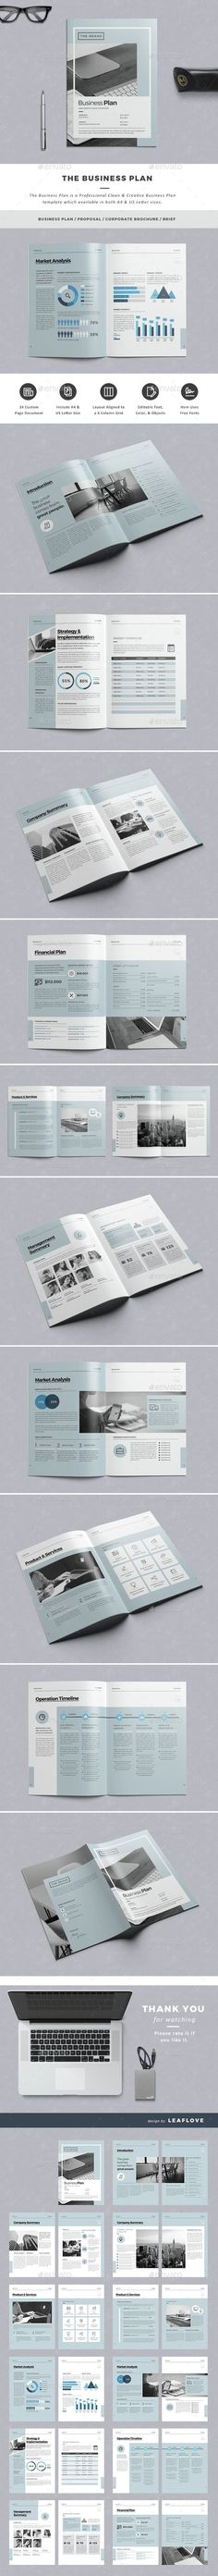 The Business Plan Template InDesign INDD. Download here: http://graphicriver.net/item/the-business-plan/14645700?ref=ksioks: